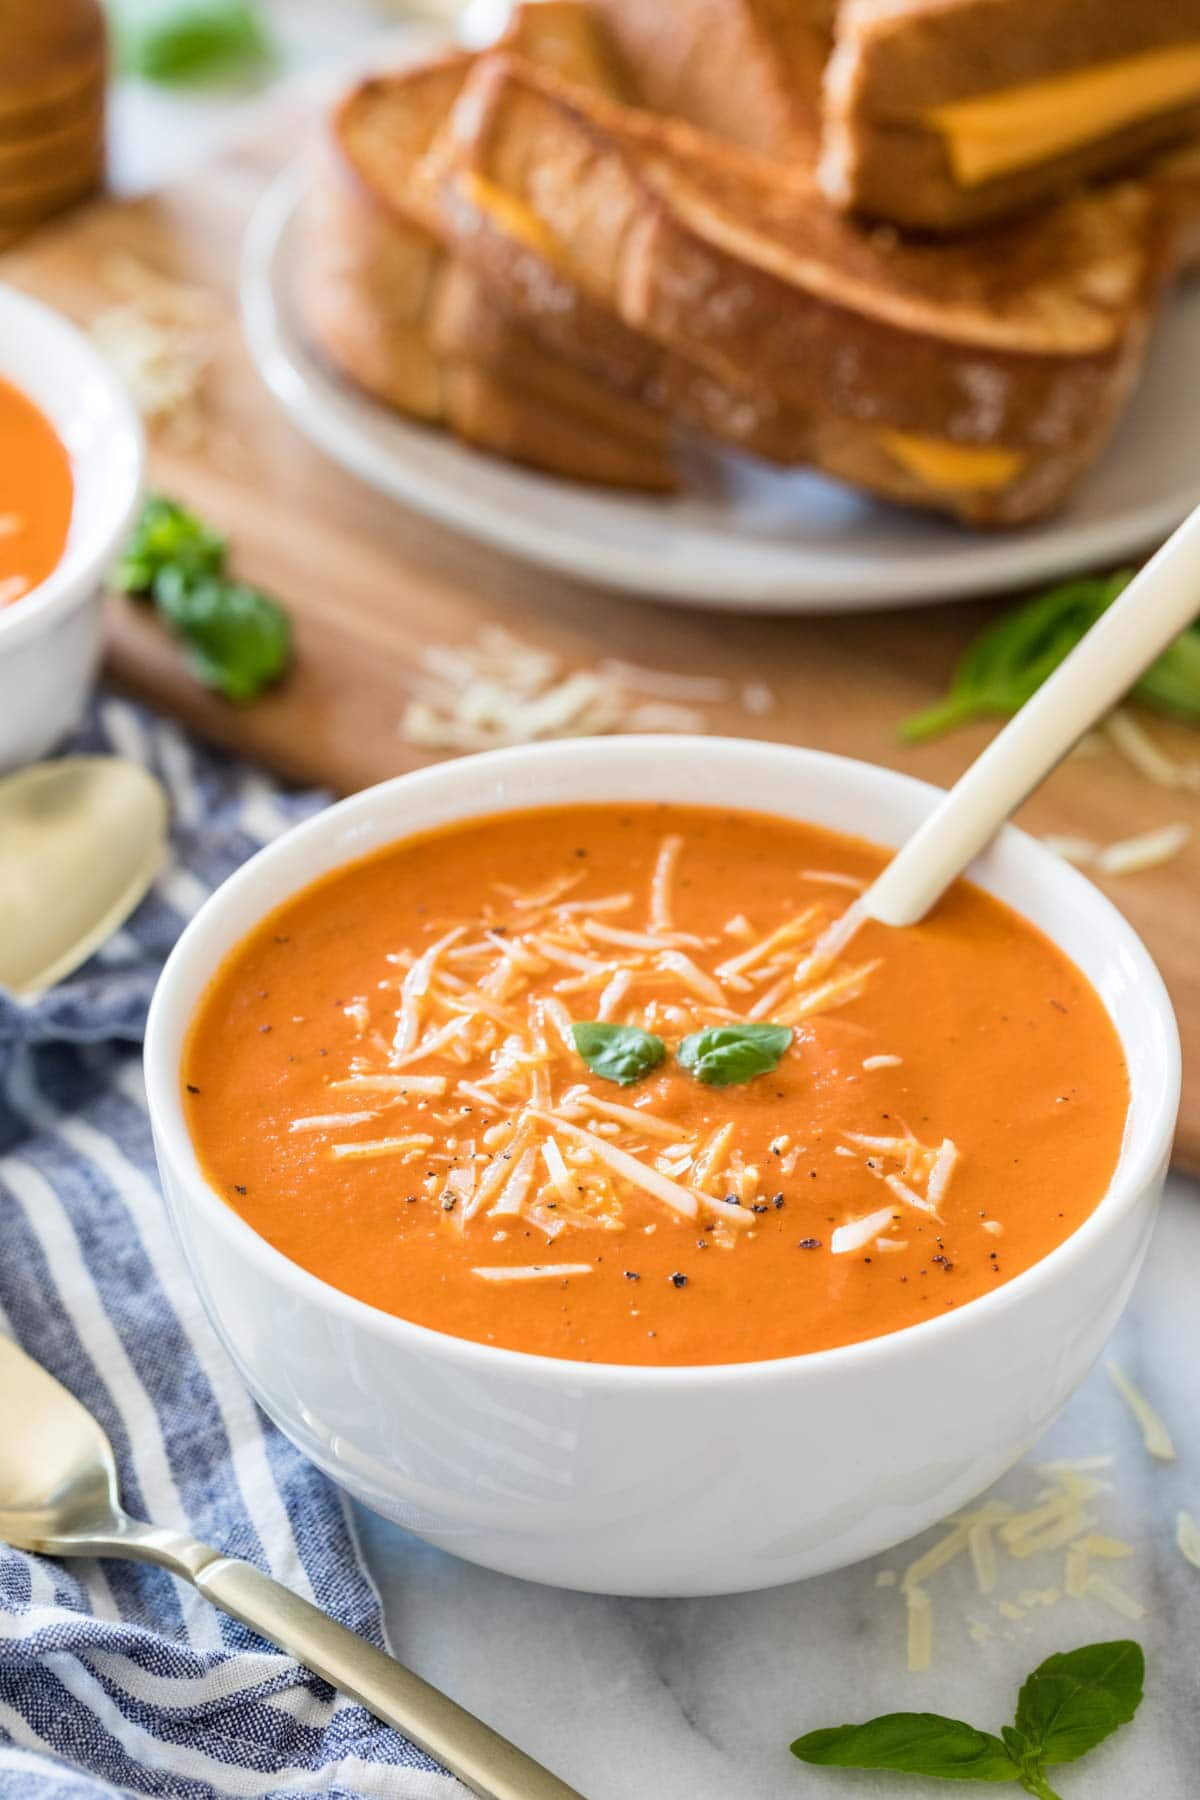 velvety tomato soup topped with cheese and fresh basil in white bowl with spoon dipped into it